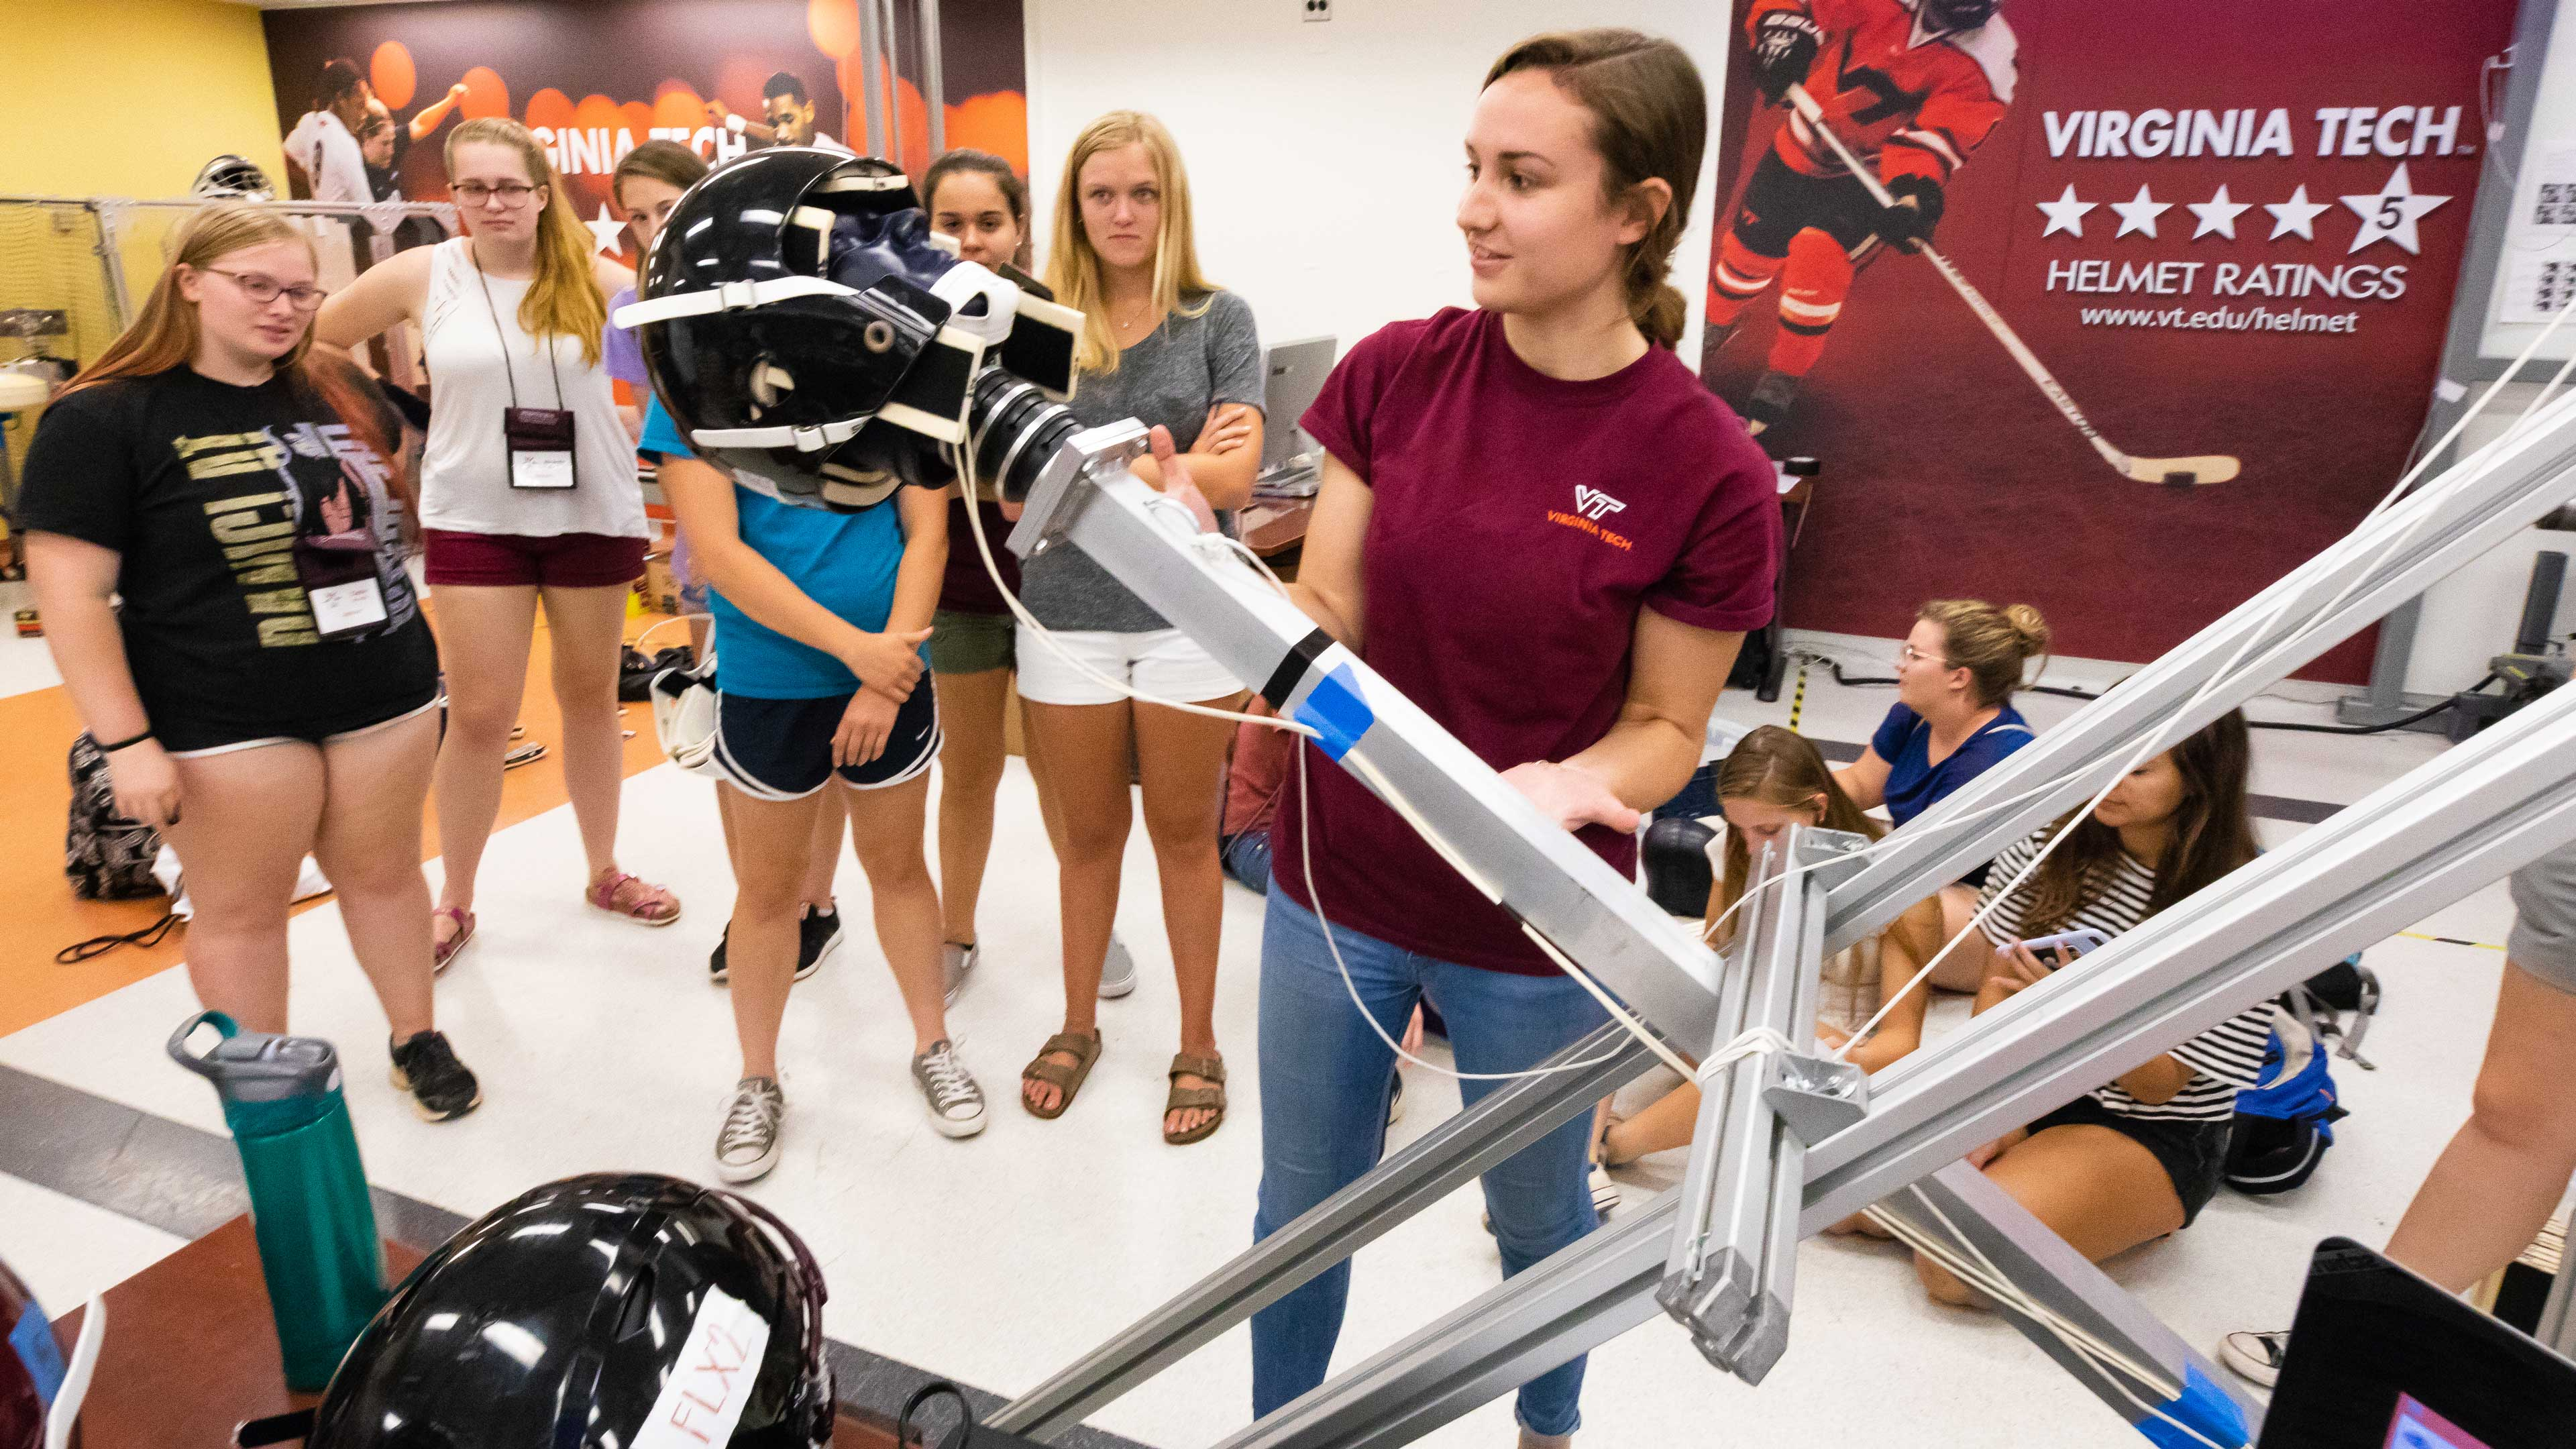 Students watching a helmet drop in the Virginia Tech BEAM Helmet Lab